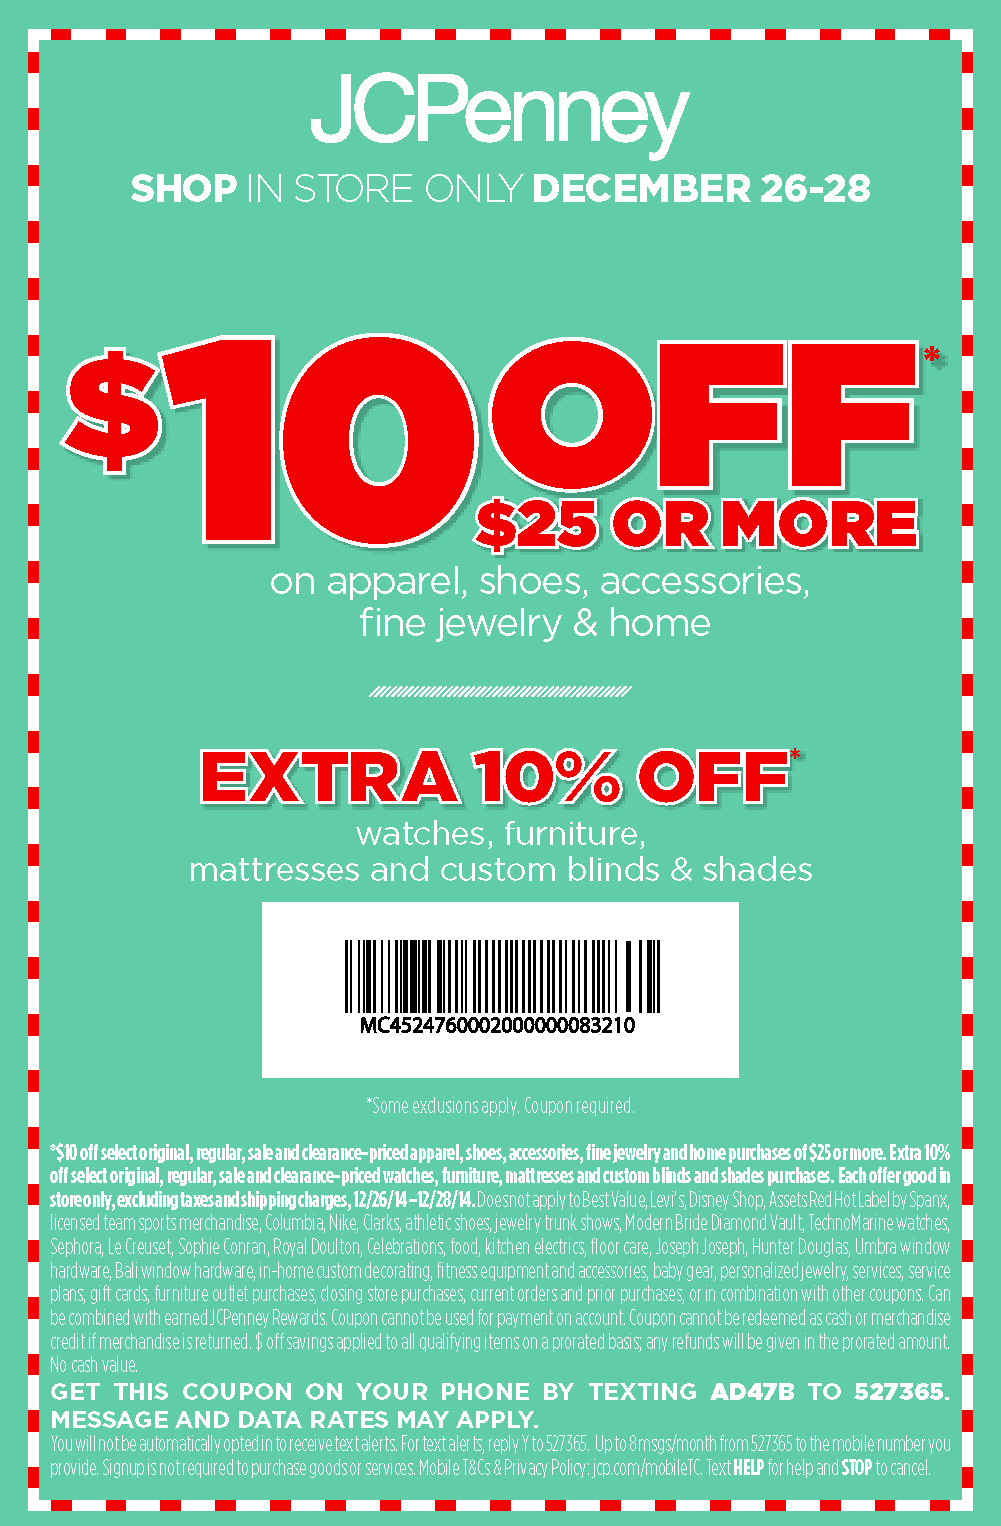 JCPenney Coupon November 2017 $10 off $25 at JCPenney